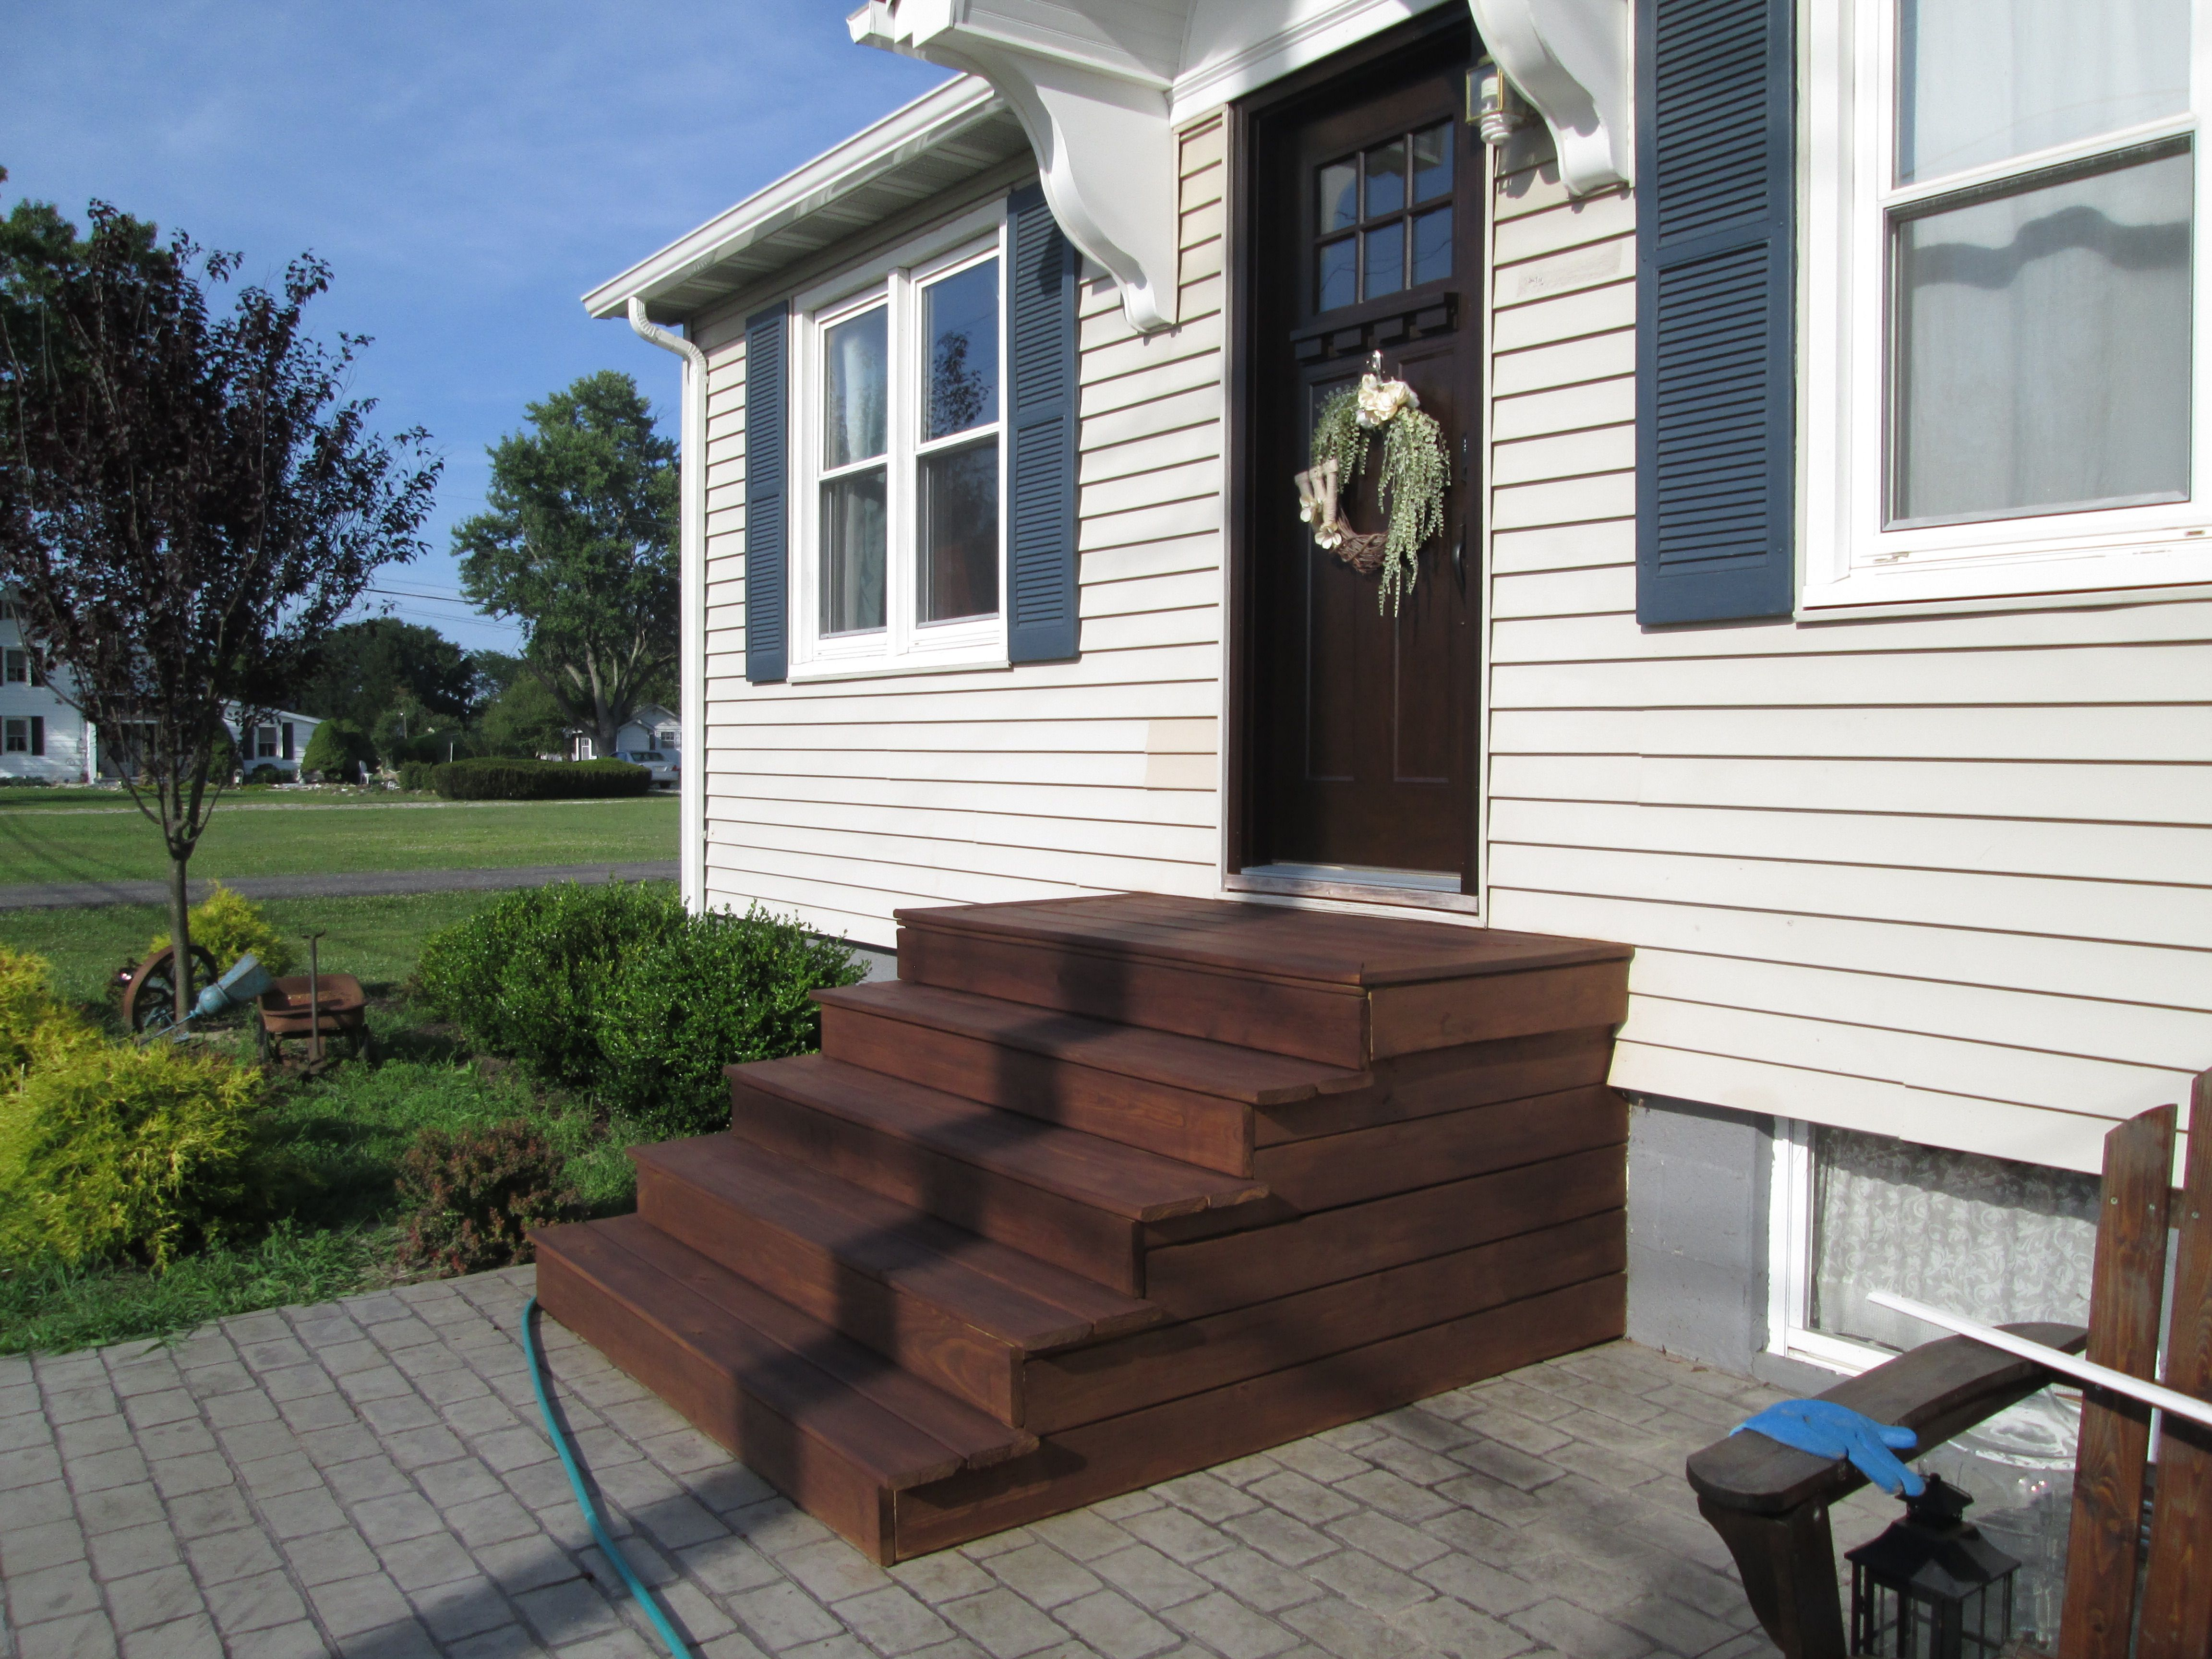 Another Beautiful Deck Restoration With Rebuilt Steps Deck Restoration Wood Deck Staining Wood